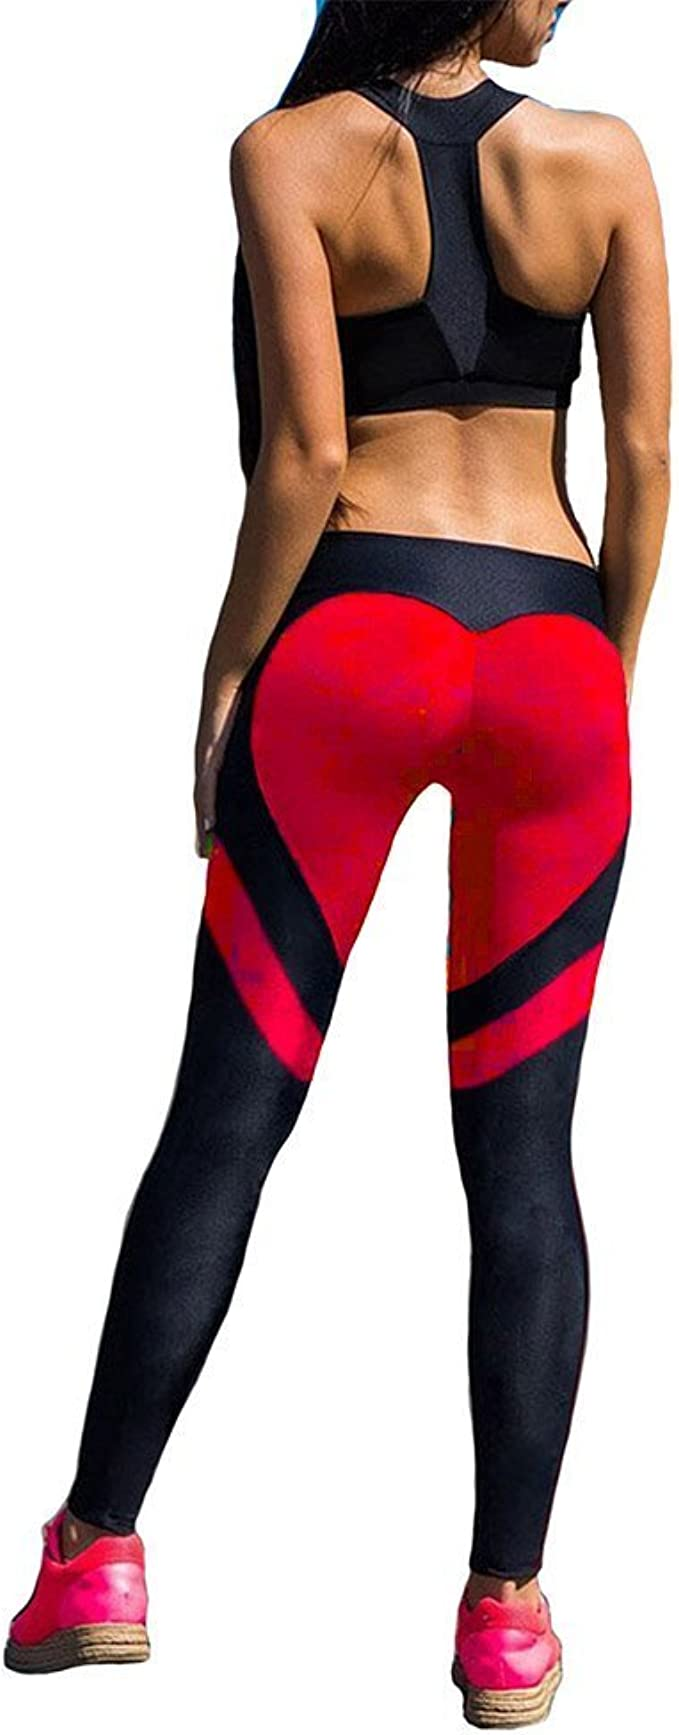 Fittoo Womens Heart Shape Yoga Pants Sport Pants Workout Leggings Sexy High Waist Trousers